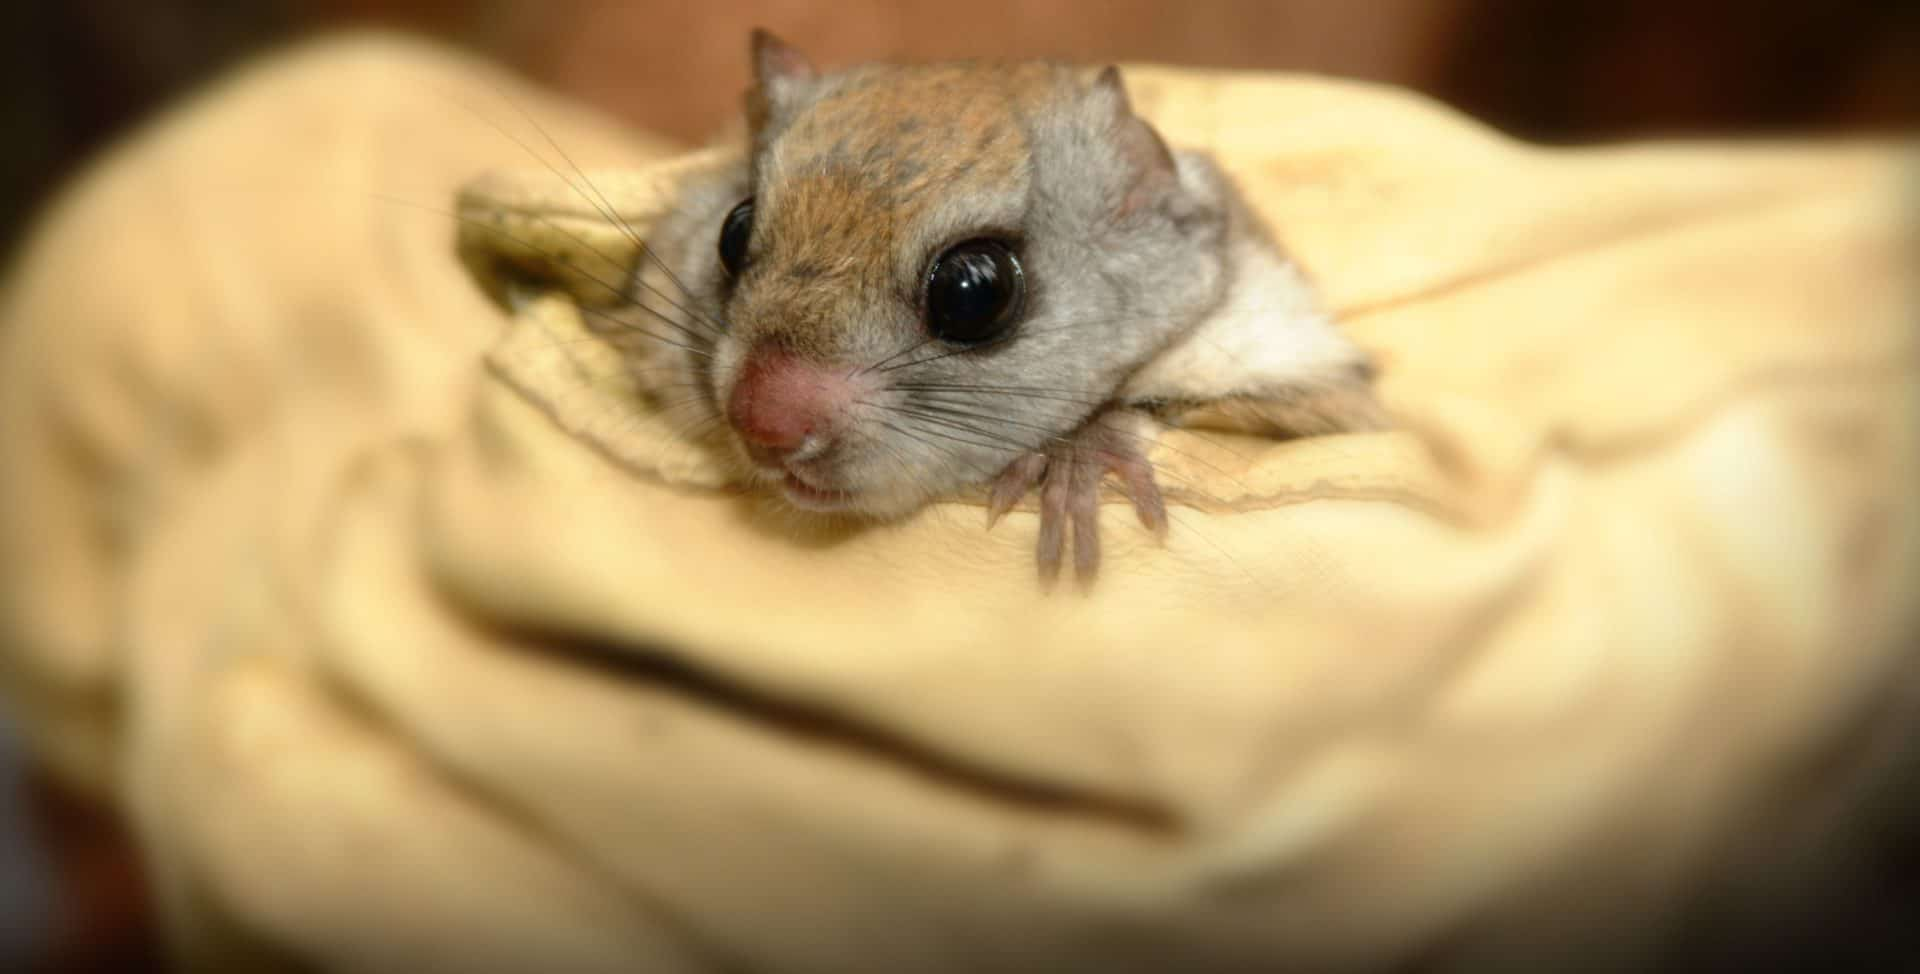 a flying squirrel being held in a glove